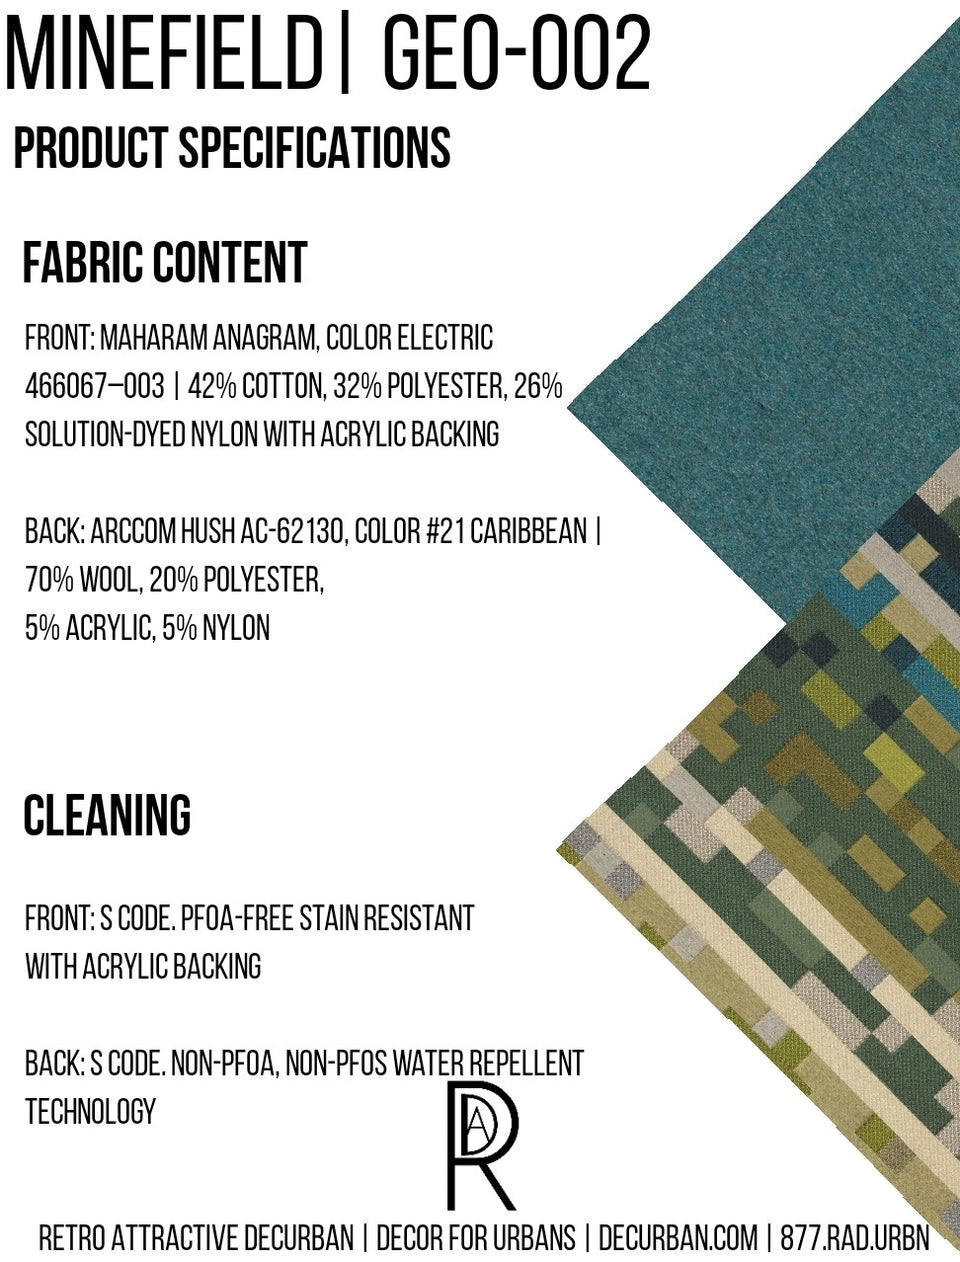 Decurban Minefield Fabric Specification Sheet